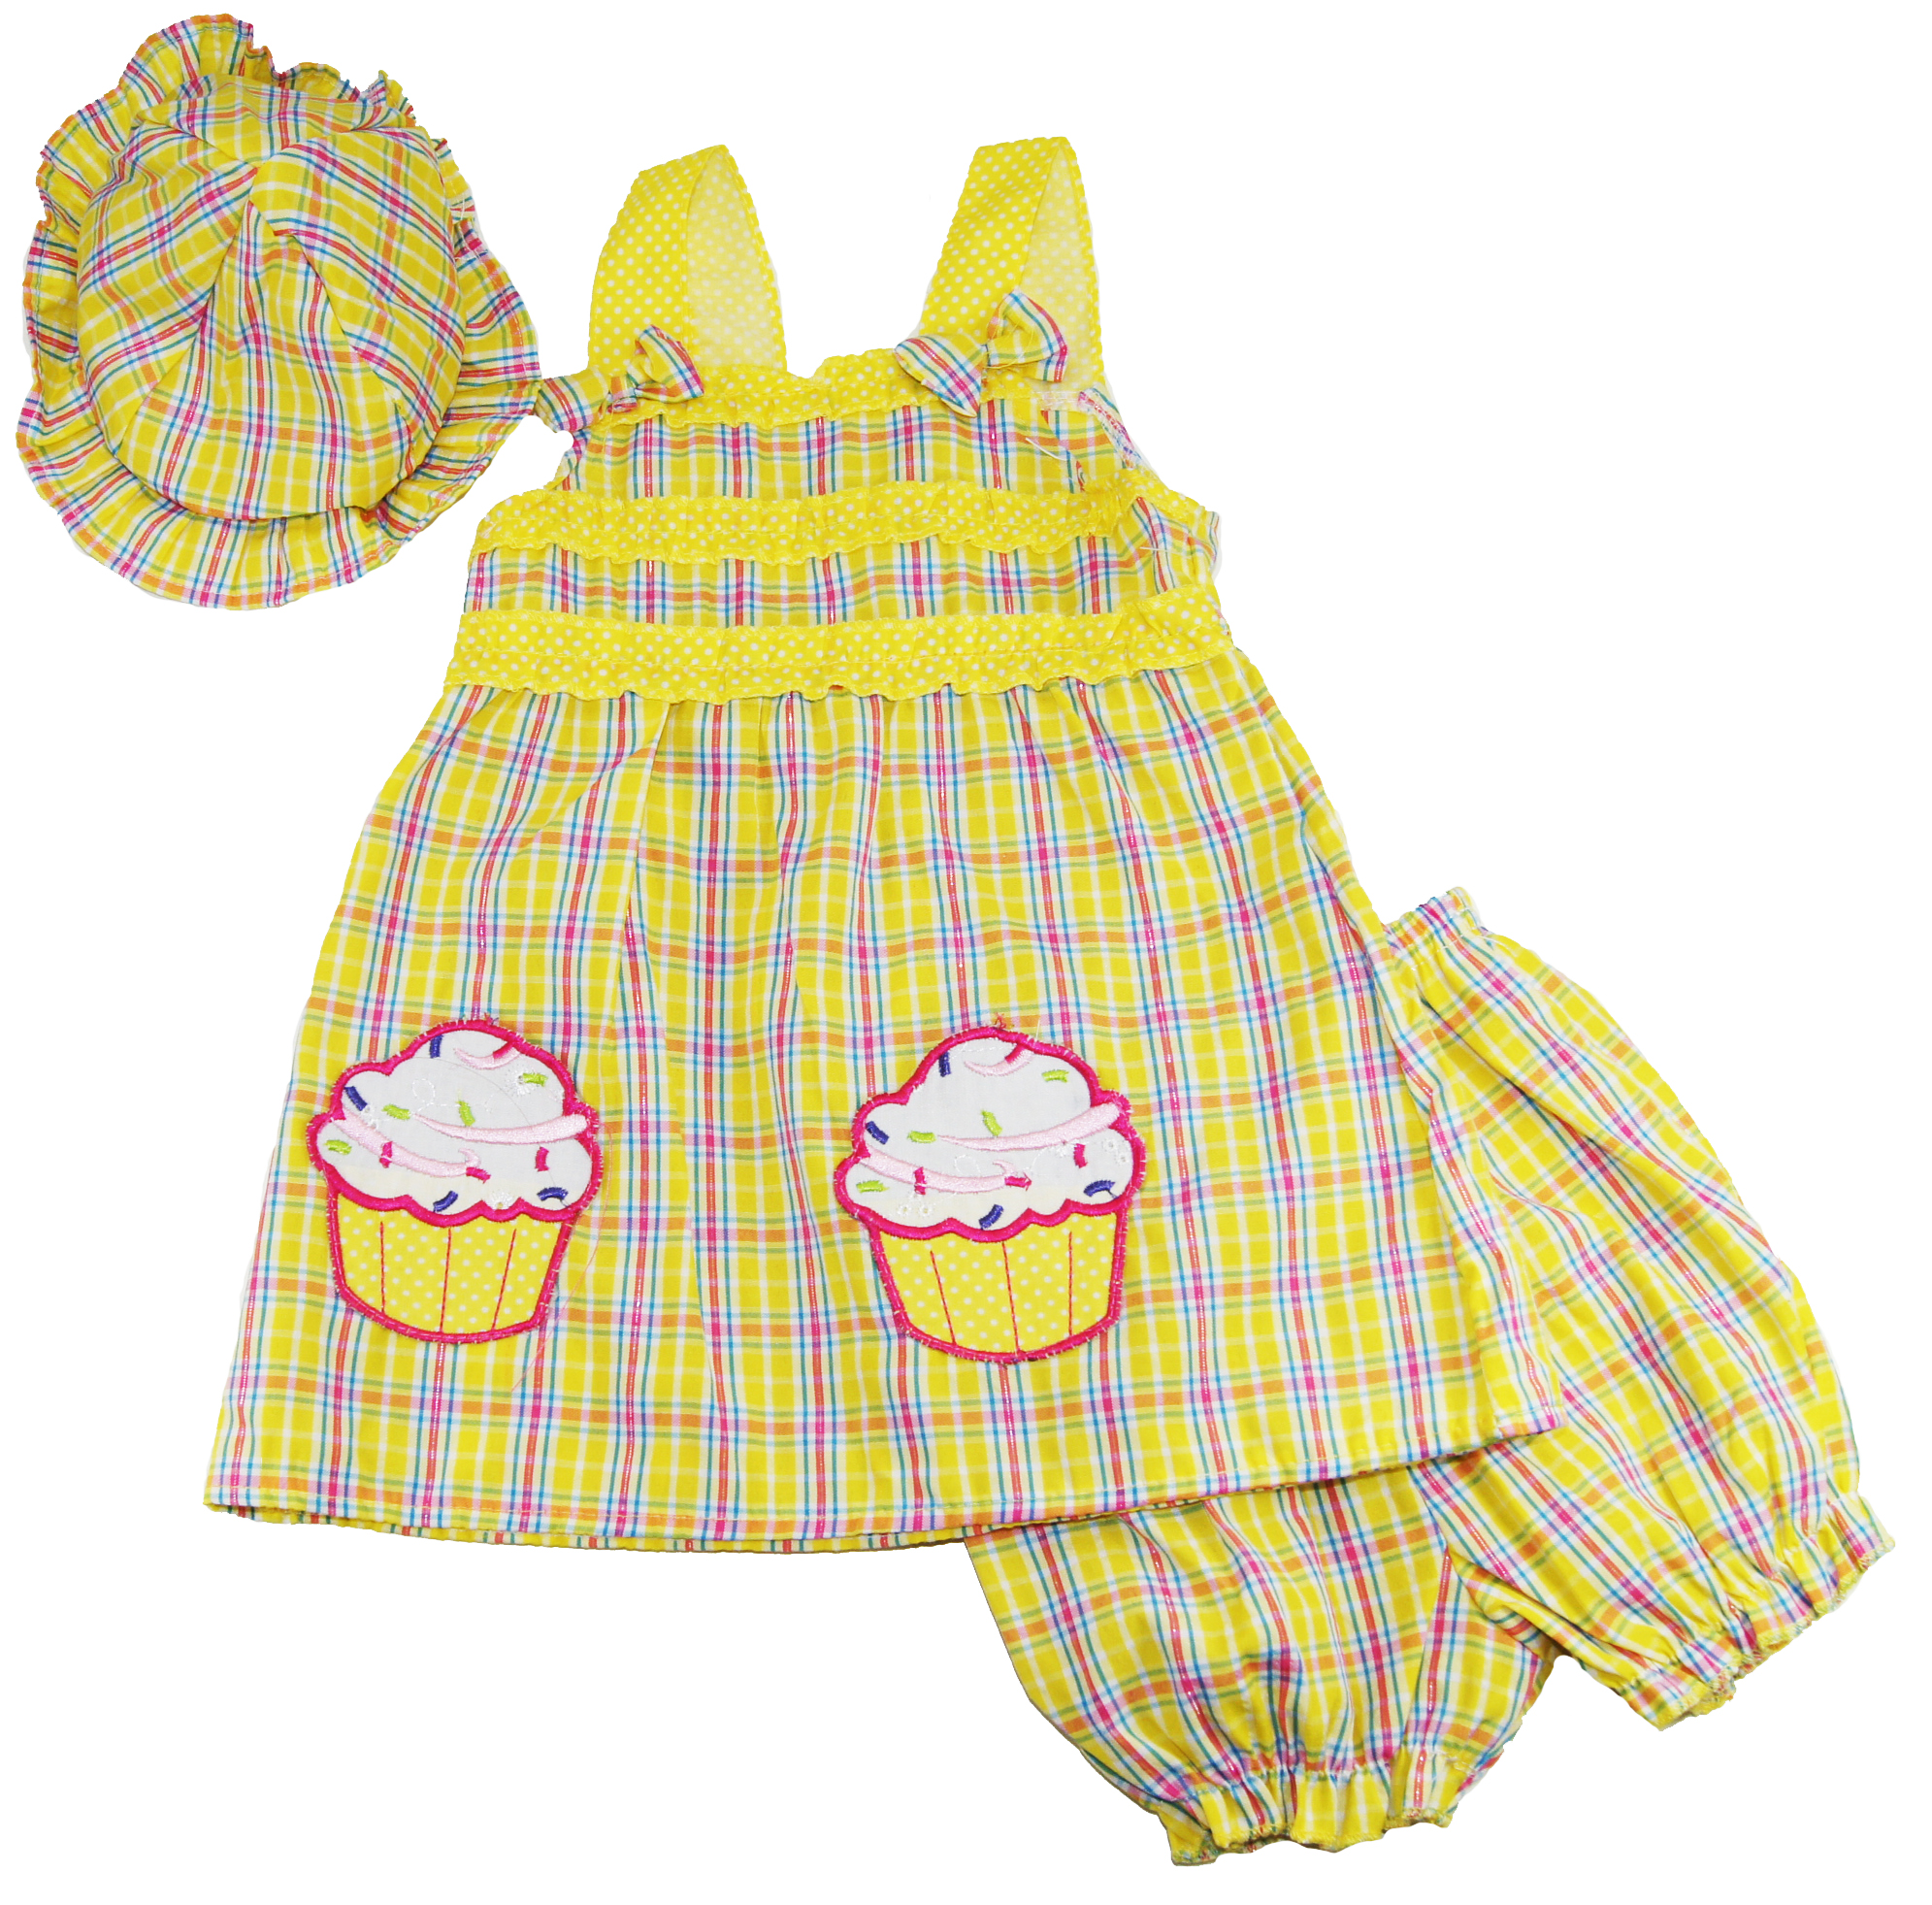 Coney Island Baby Girls Cupcake Dress with Hat and Diaper Cover Set at Sears.com